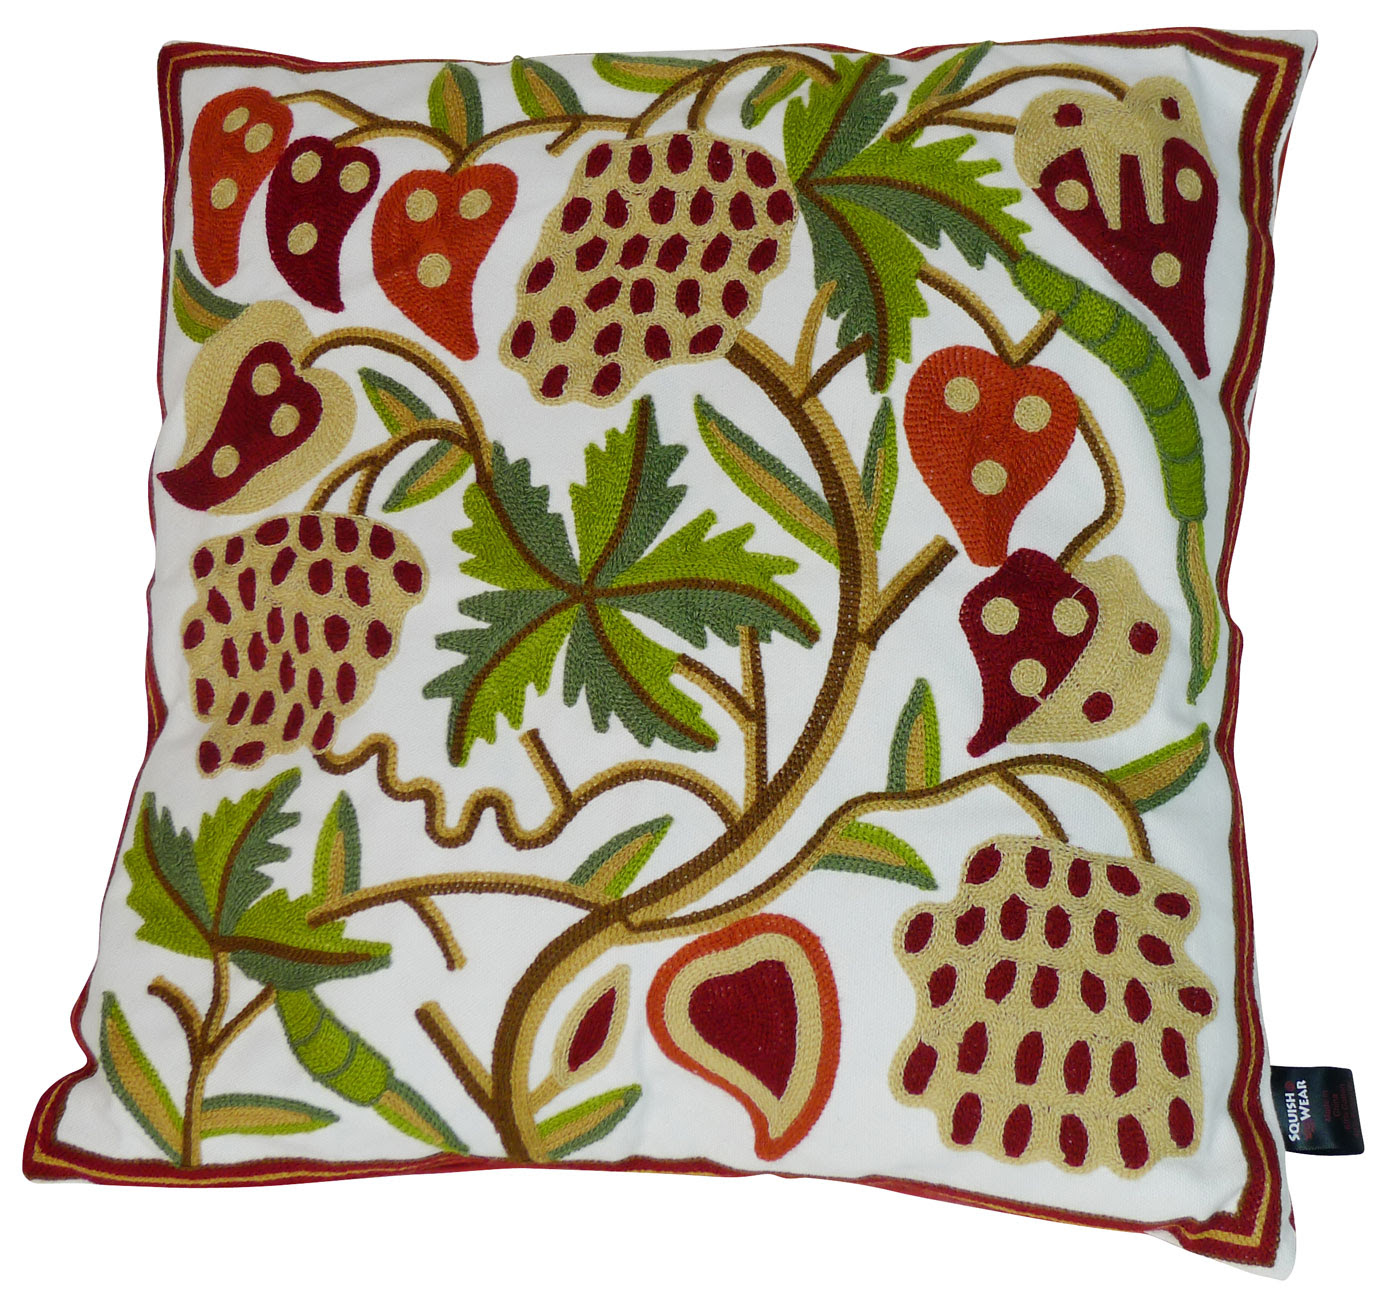 Spiceberry Embroidered Pillow cover - Tropical Design